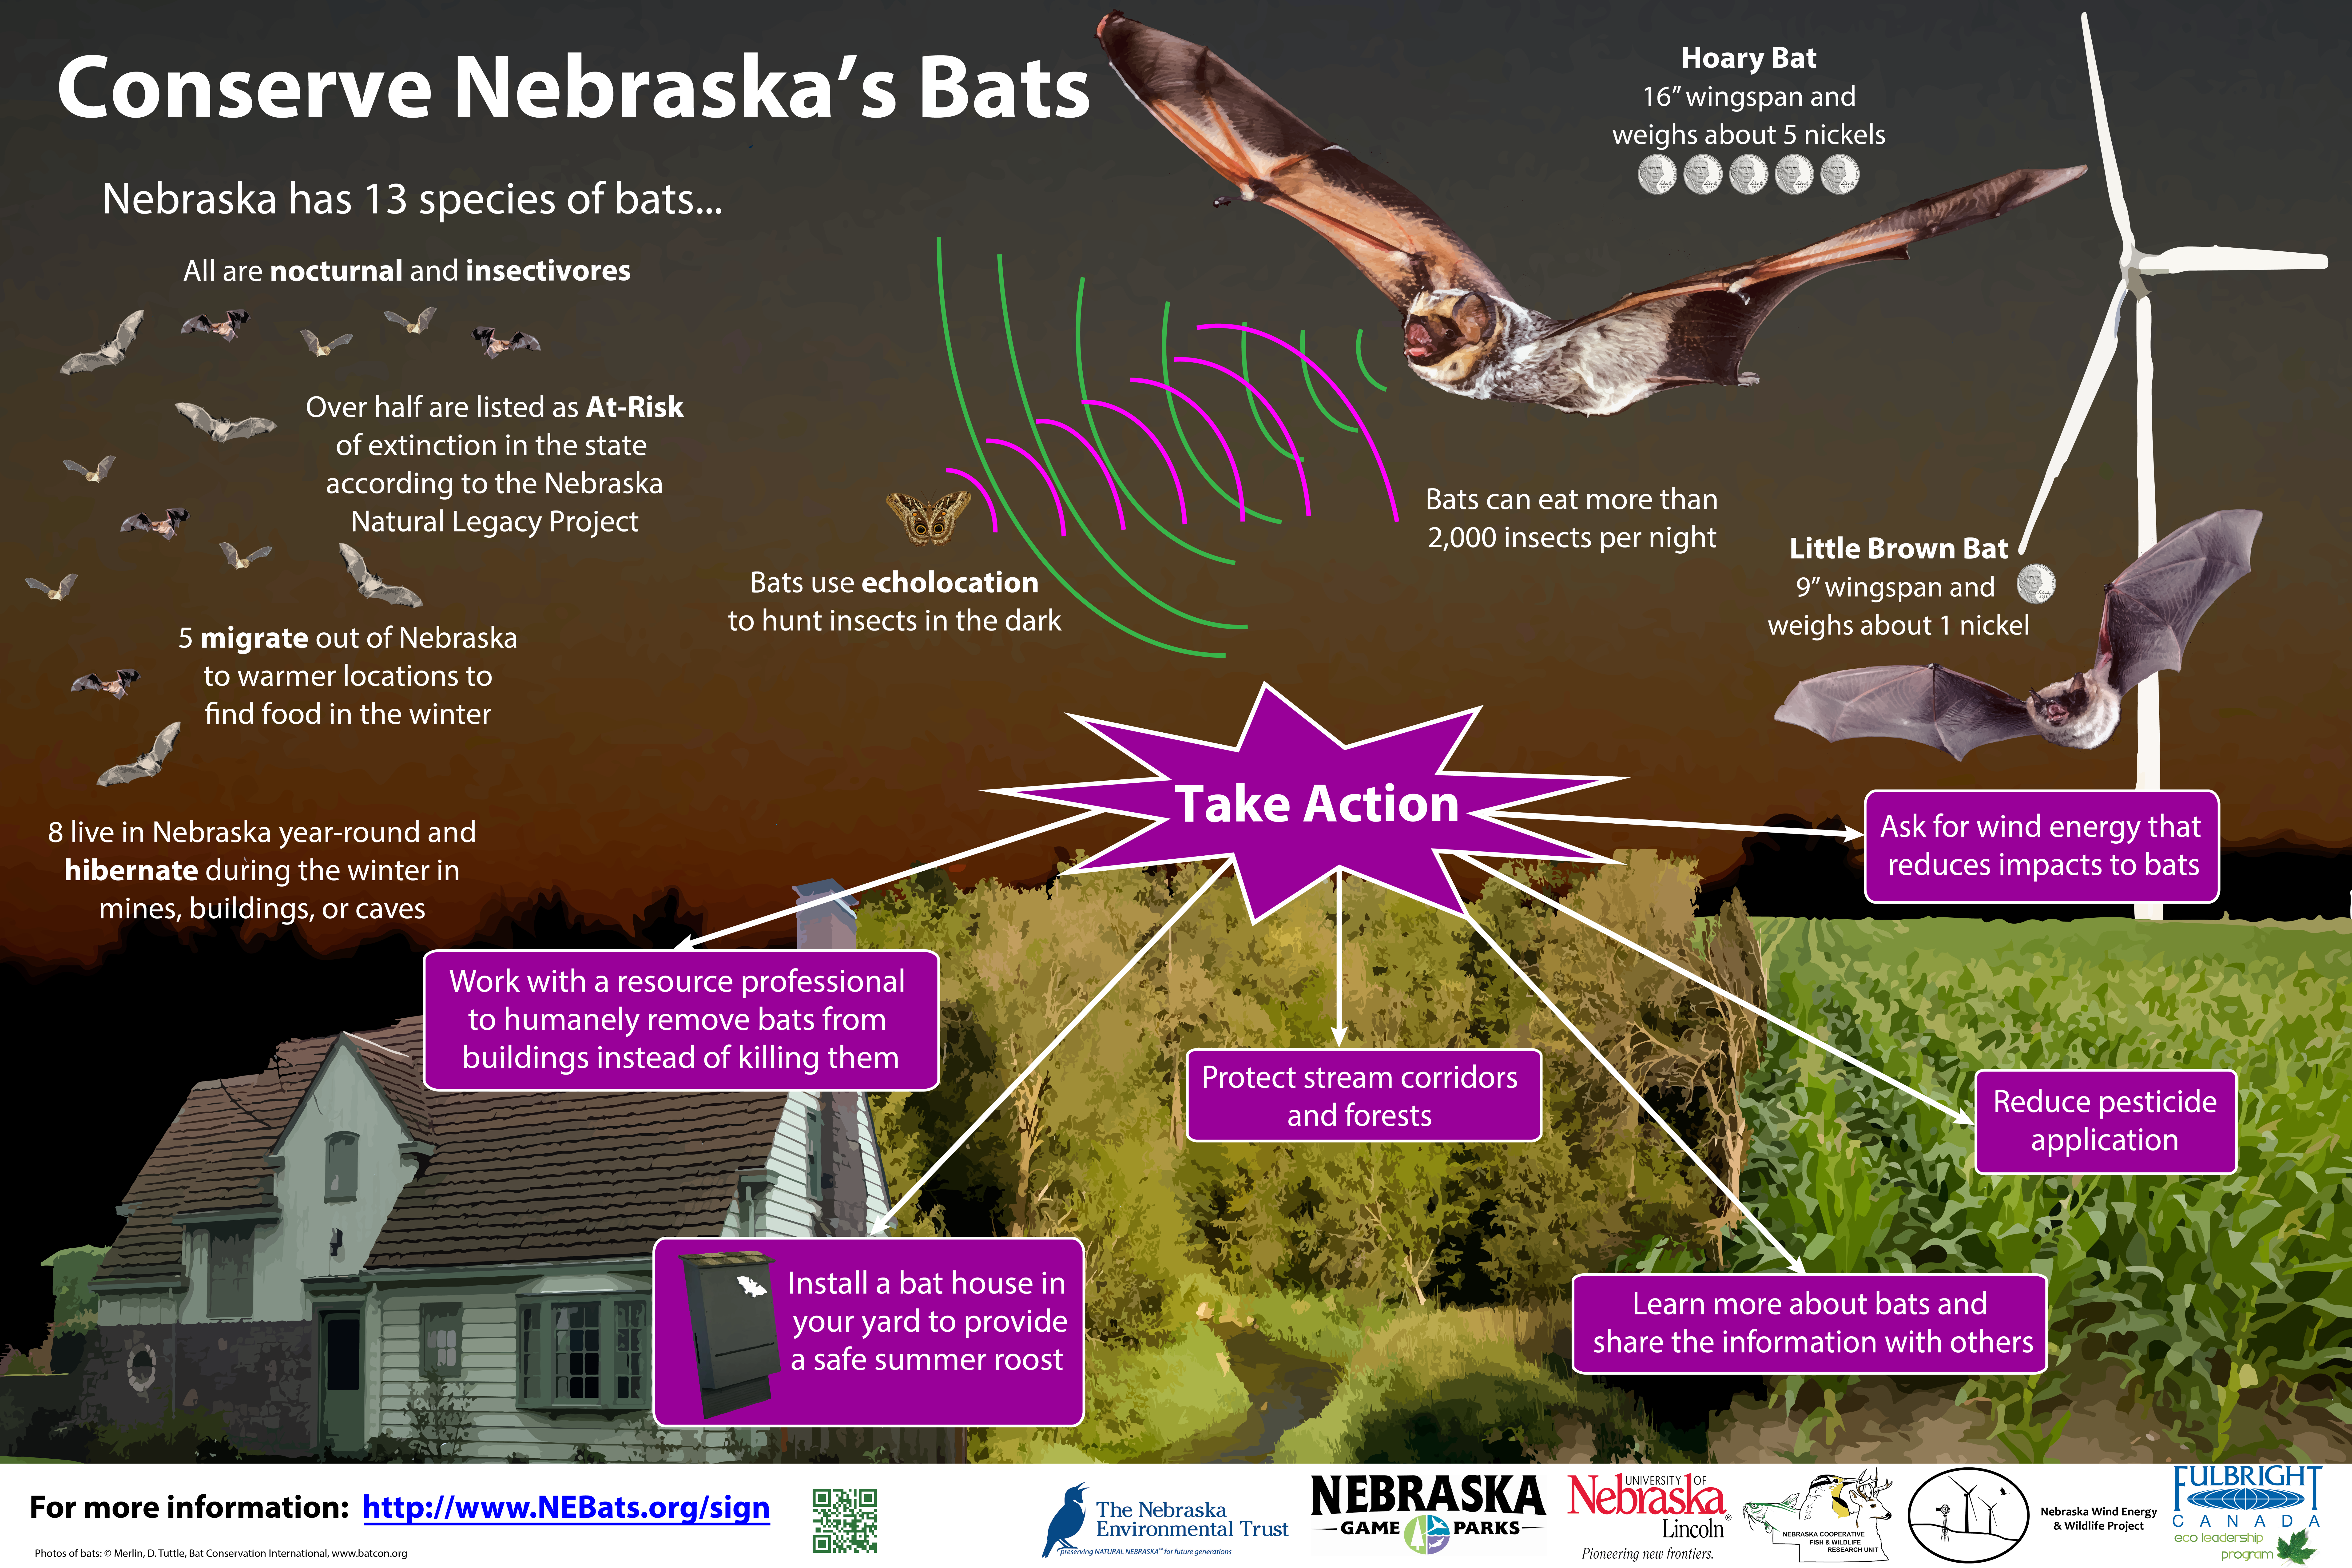 Conserve Nebraska's Bats Informational Sign